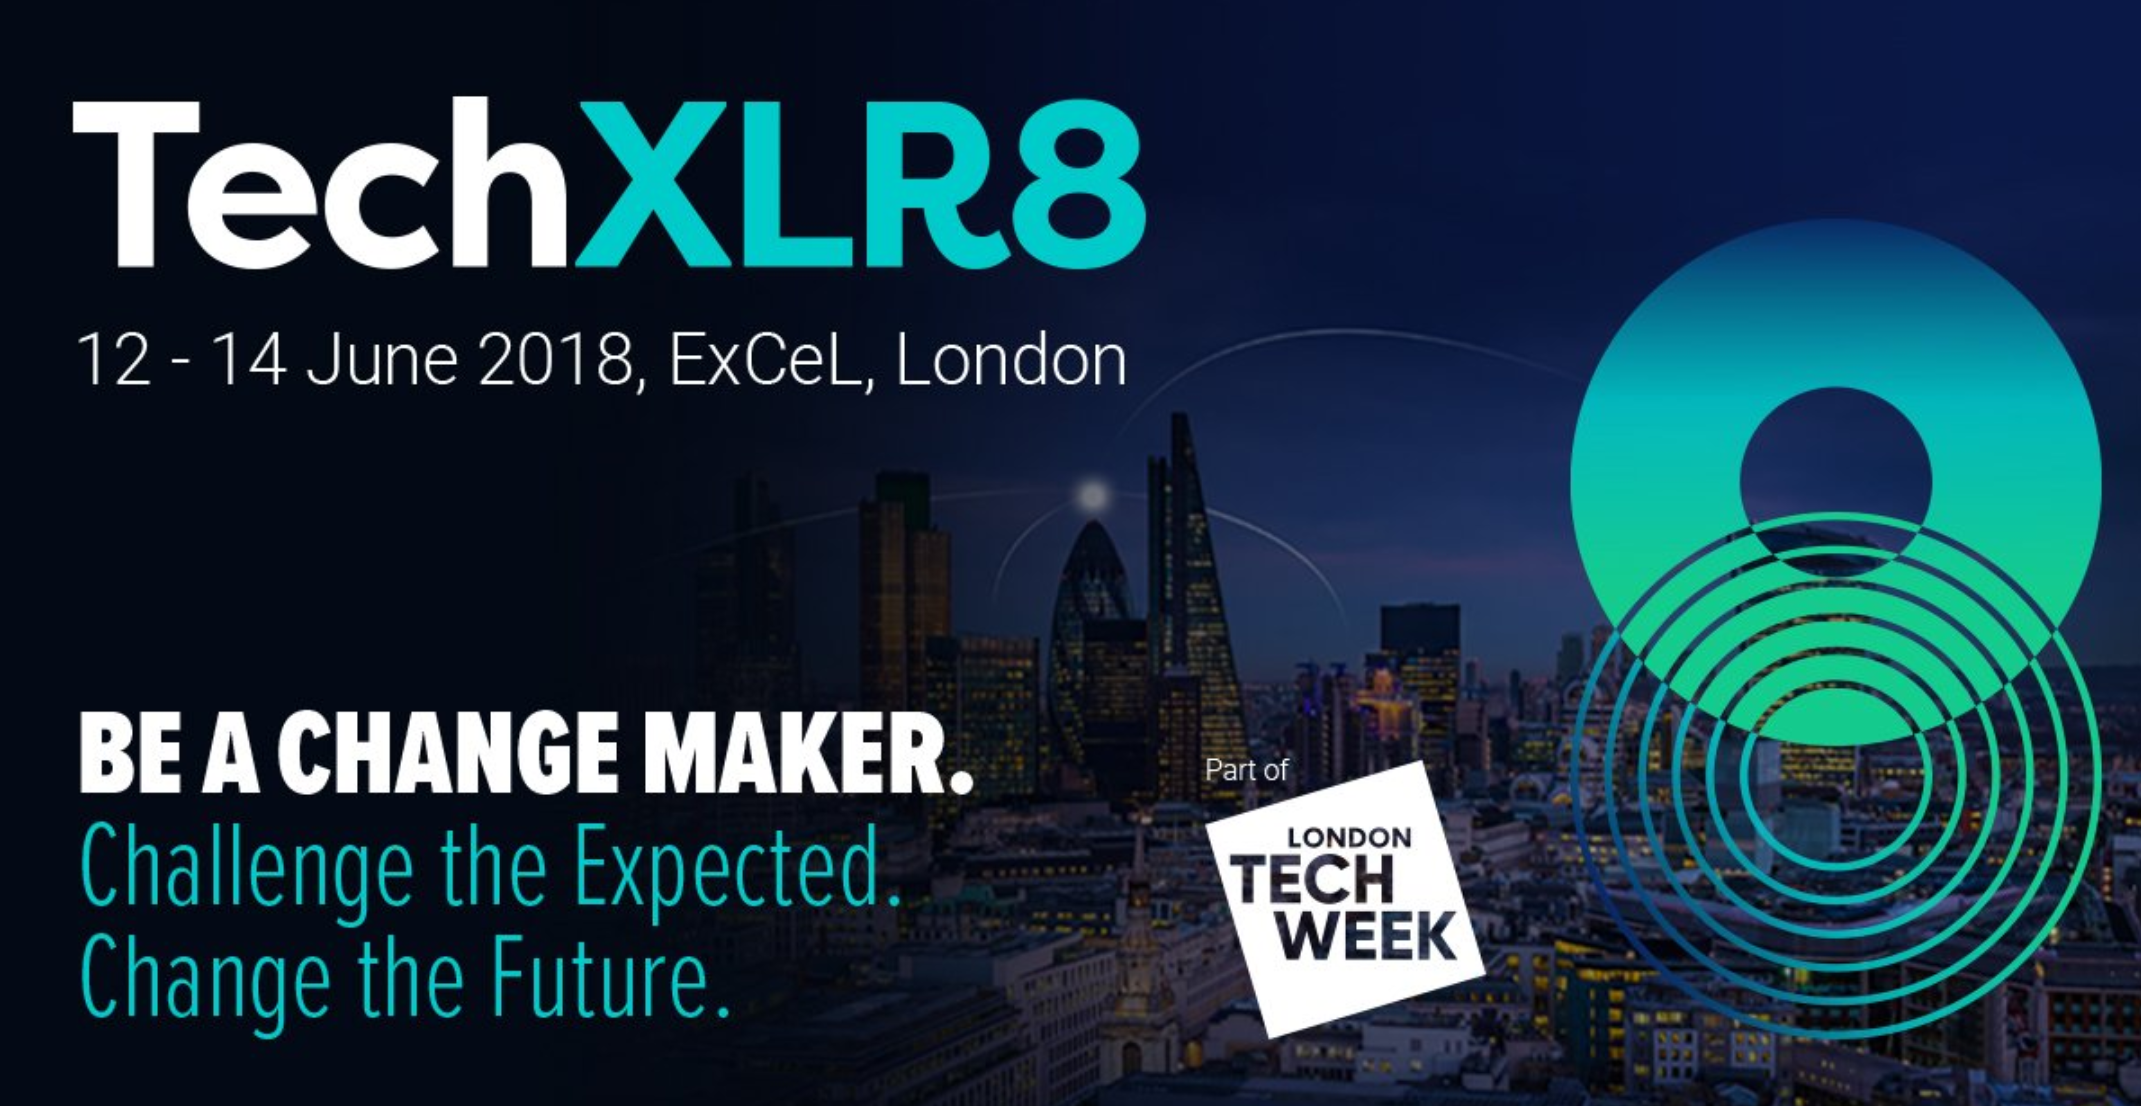 TheTin at TechXLR8 during London Tech Week 2018